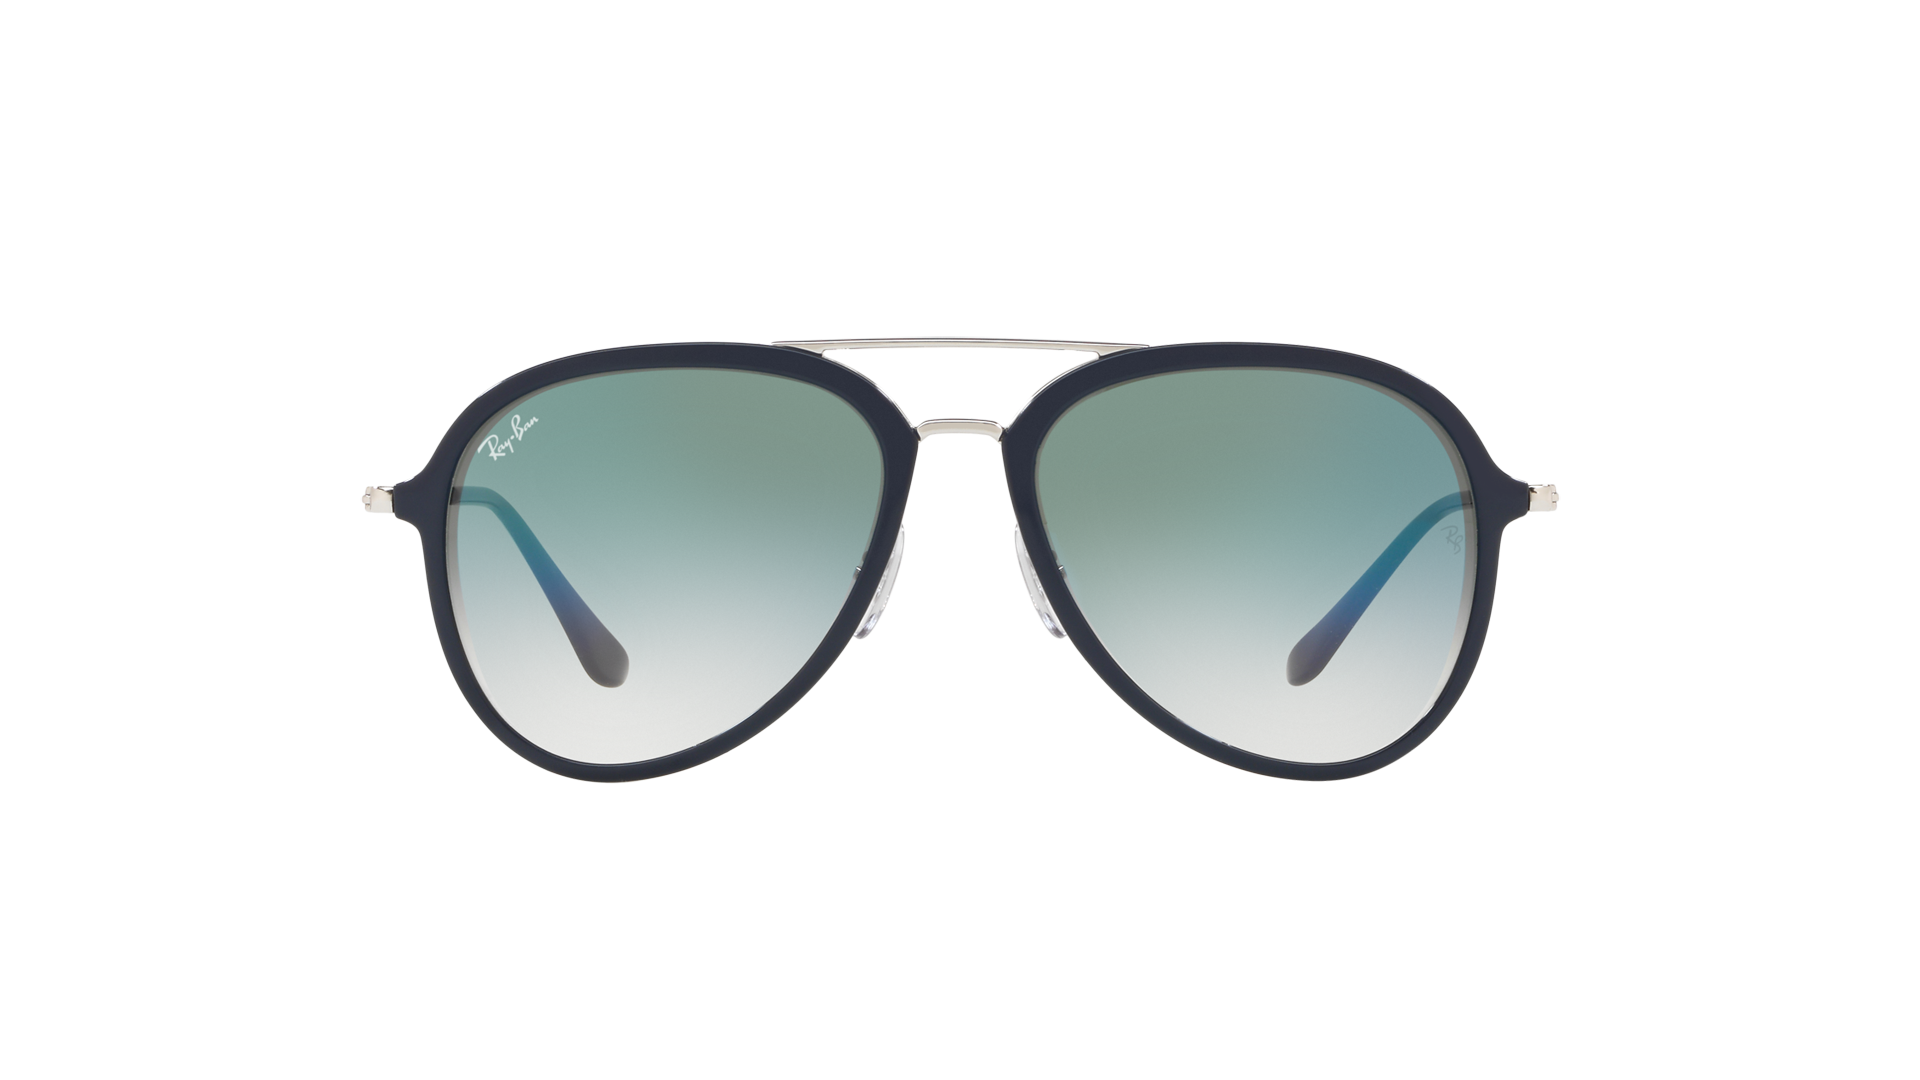 3df13ea7b62f7 Sunglasses Ray-Ban RB4298 6334 3A 57-17 Blue Large Gradient Mirror